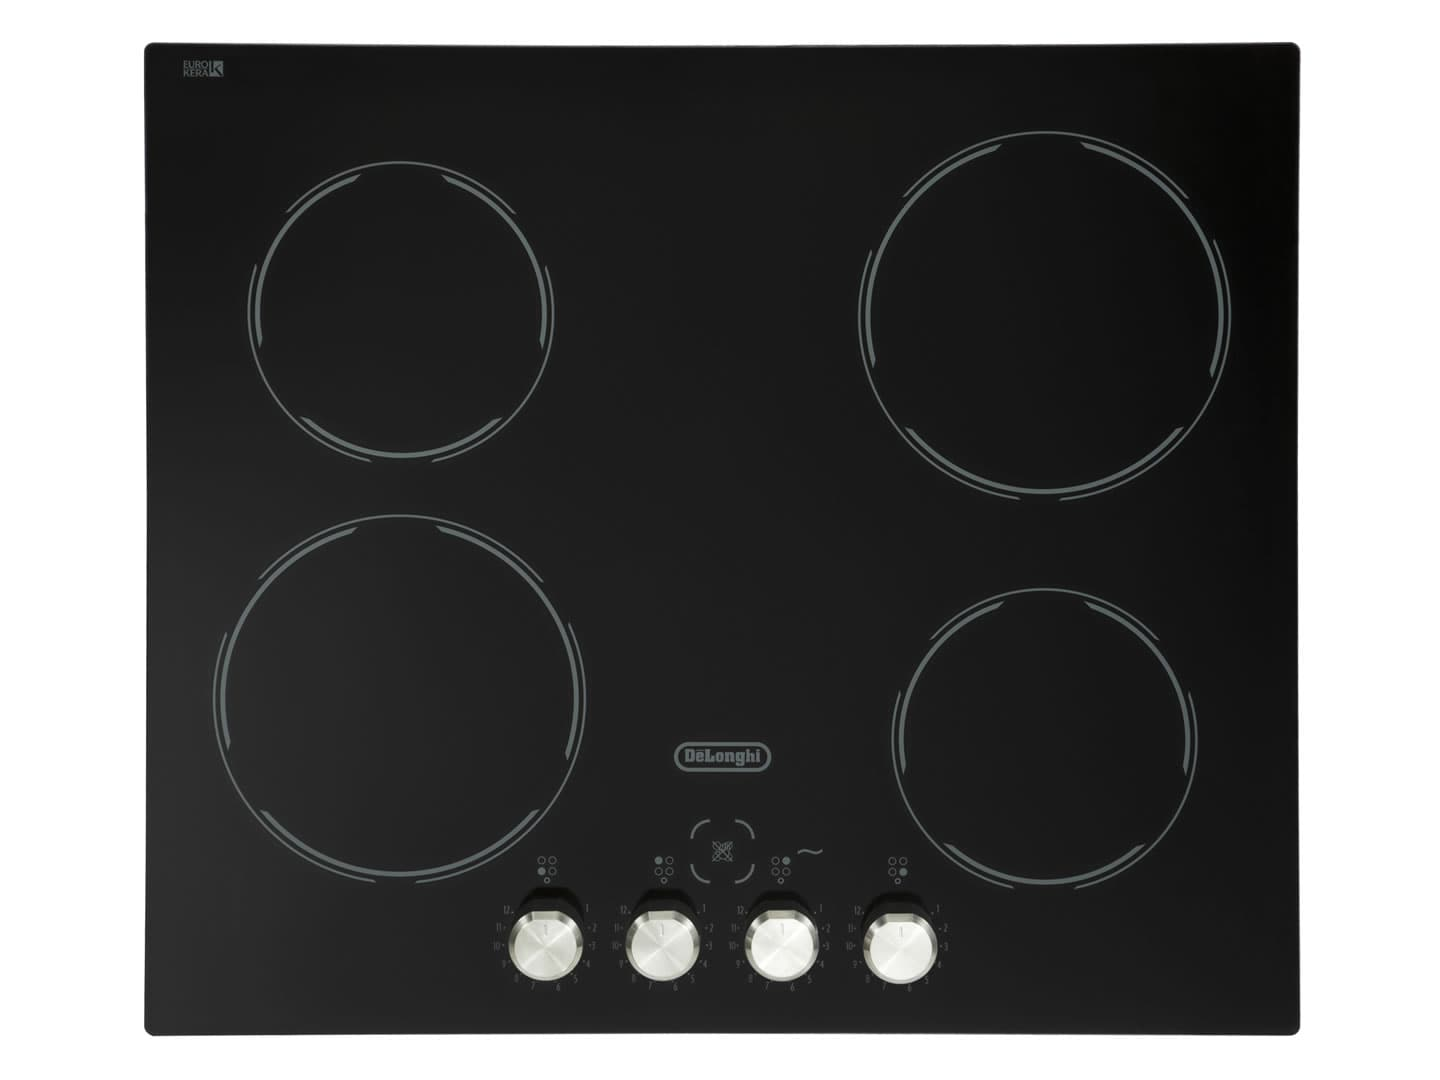 60cm 4 Zone Black Glass Ceramic Cooktop DECH60SX1